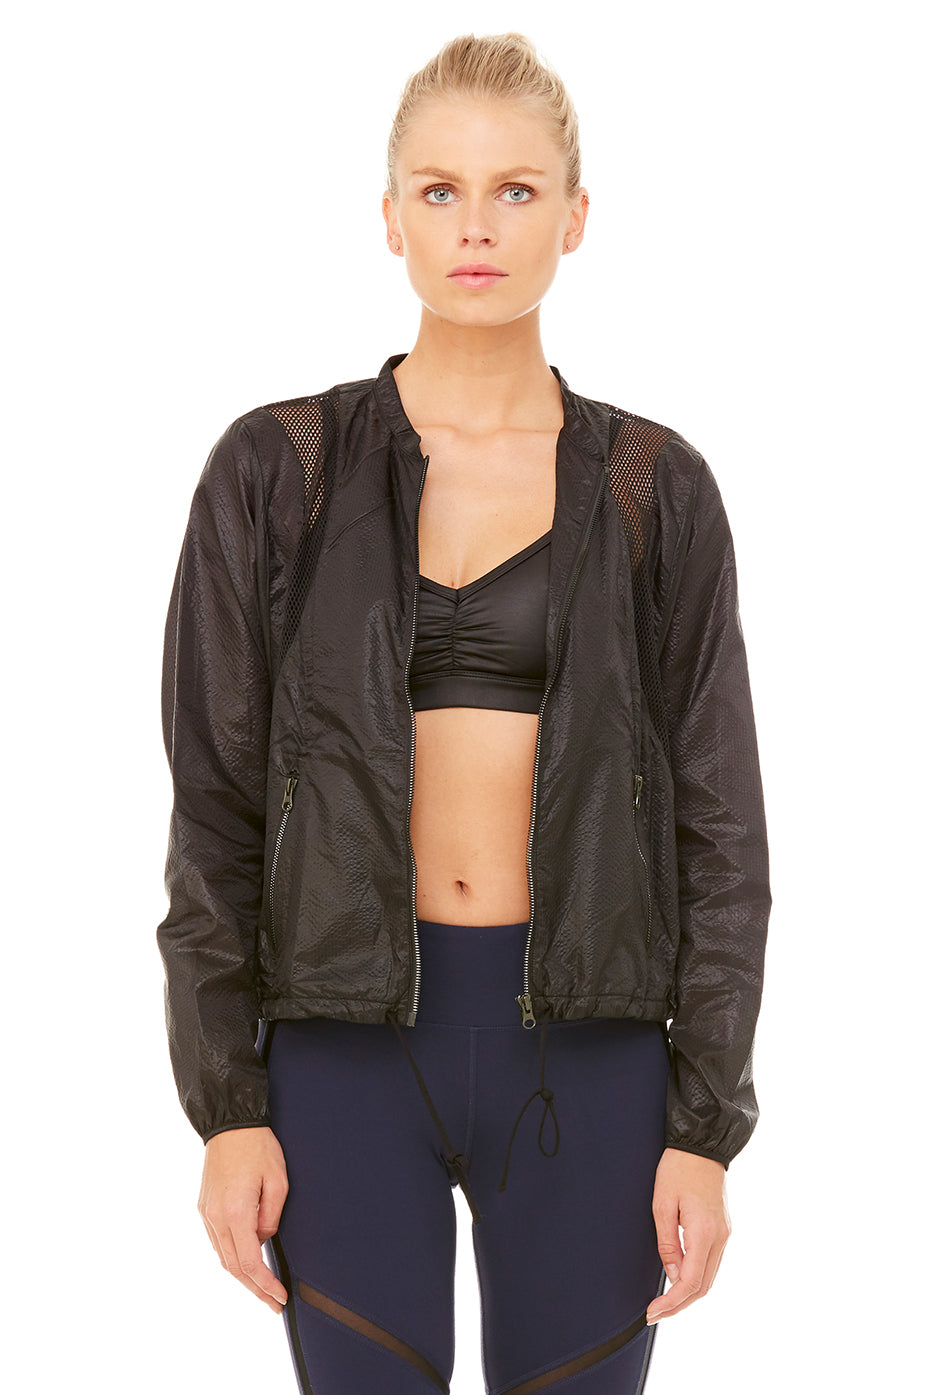 Sunset Jacket - Black